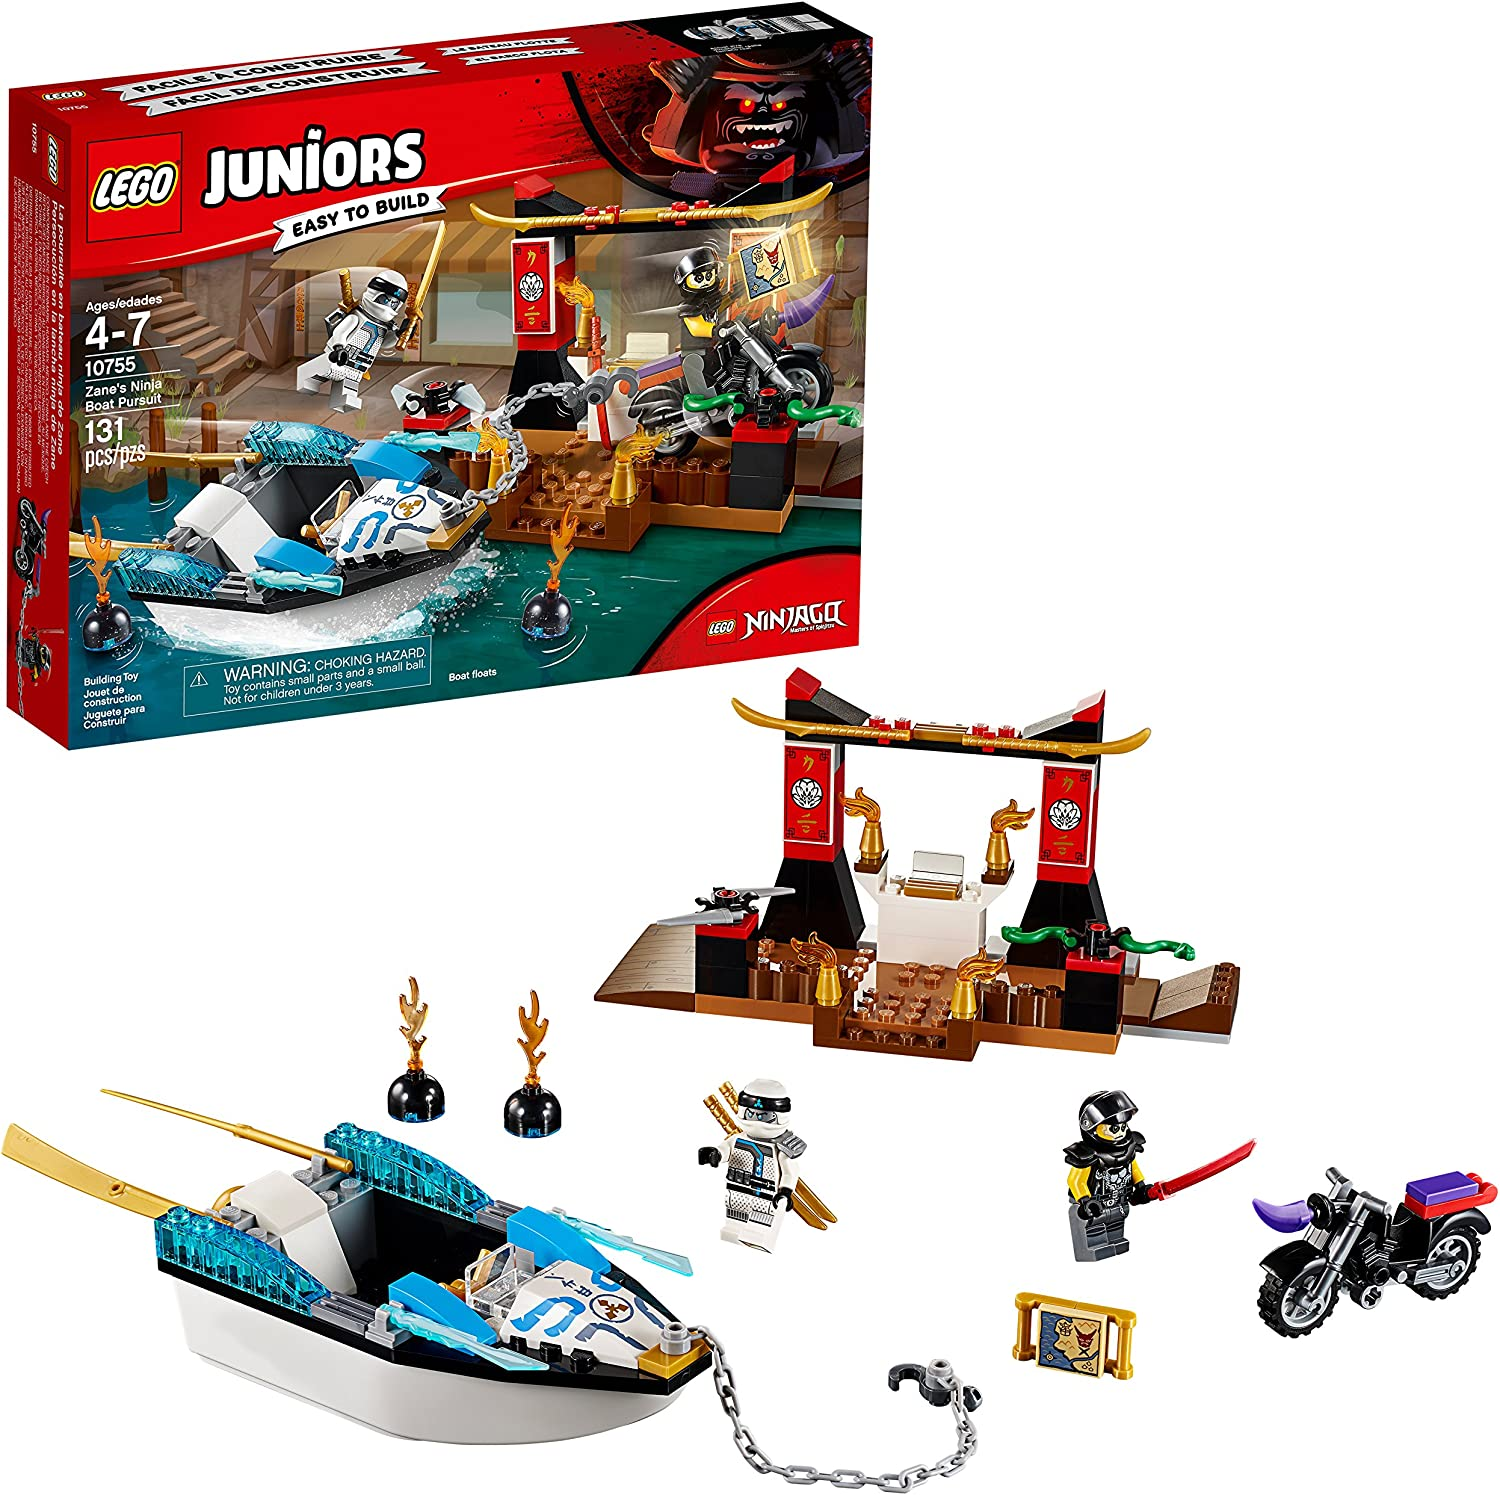 LEGO Juniors/4+ Zanes Ninja Boat Pursuit 10755 Building Kit (131 Piece)